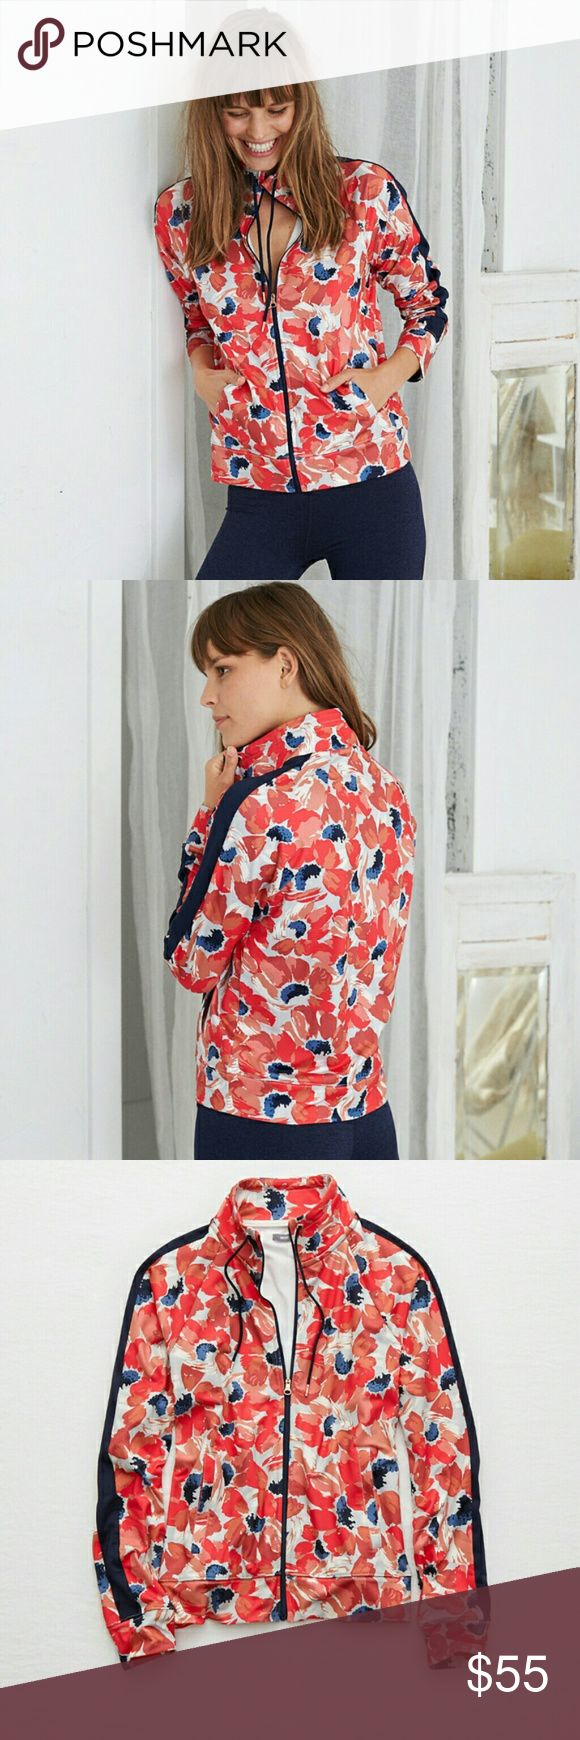 NWT Floral Aerie Track Jacket This jacket is no longer being sold online or in store's. This was a popular aerie jacket for years.  The floral designs on this jacket are vibrant and stands out , paired up with jeans or sweatpants it really brings your outfit up another level.  86% Polyester, 14% Elastane   Thanks for stopping by!   🍃Offers are welcomed through the offer button 🍃I am also not interested in trades at the moment  📷INSTAGRAM @ayysaki aerie Jackets & Coats